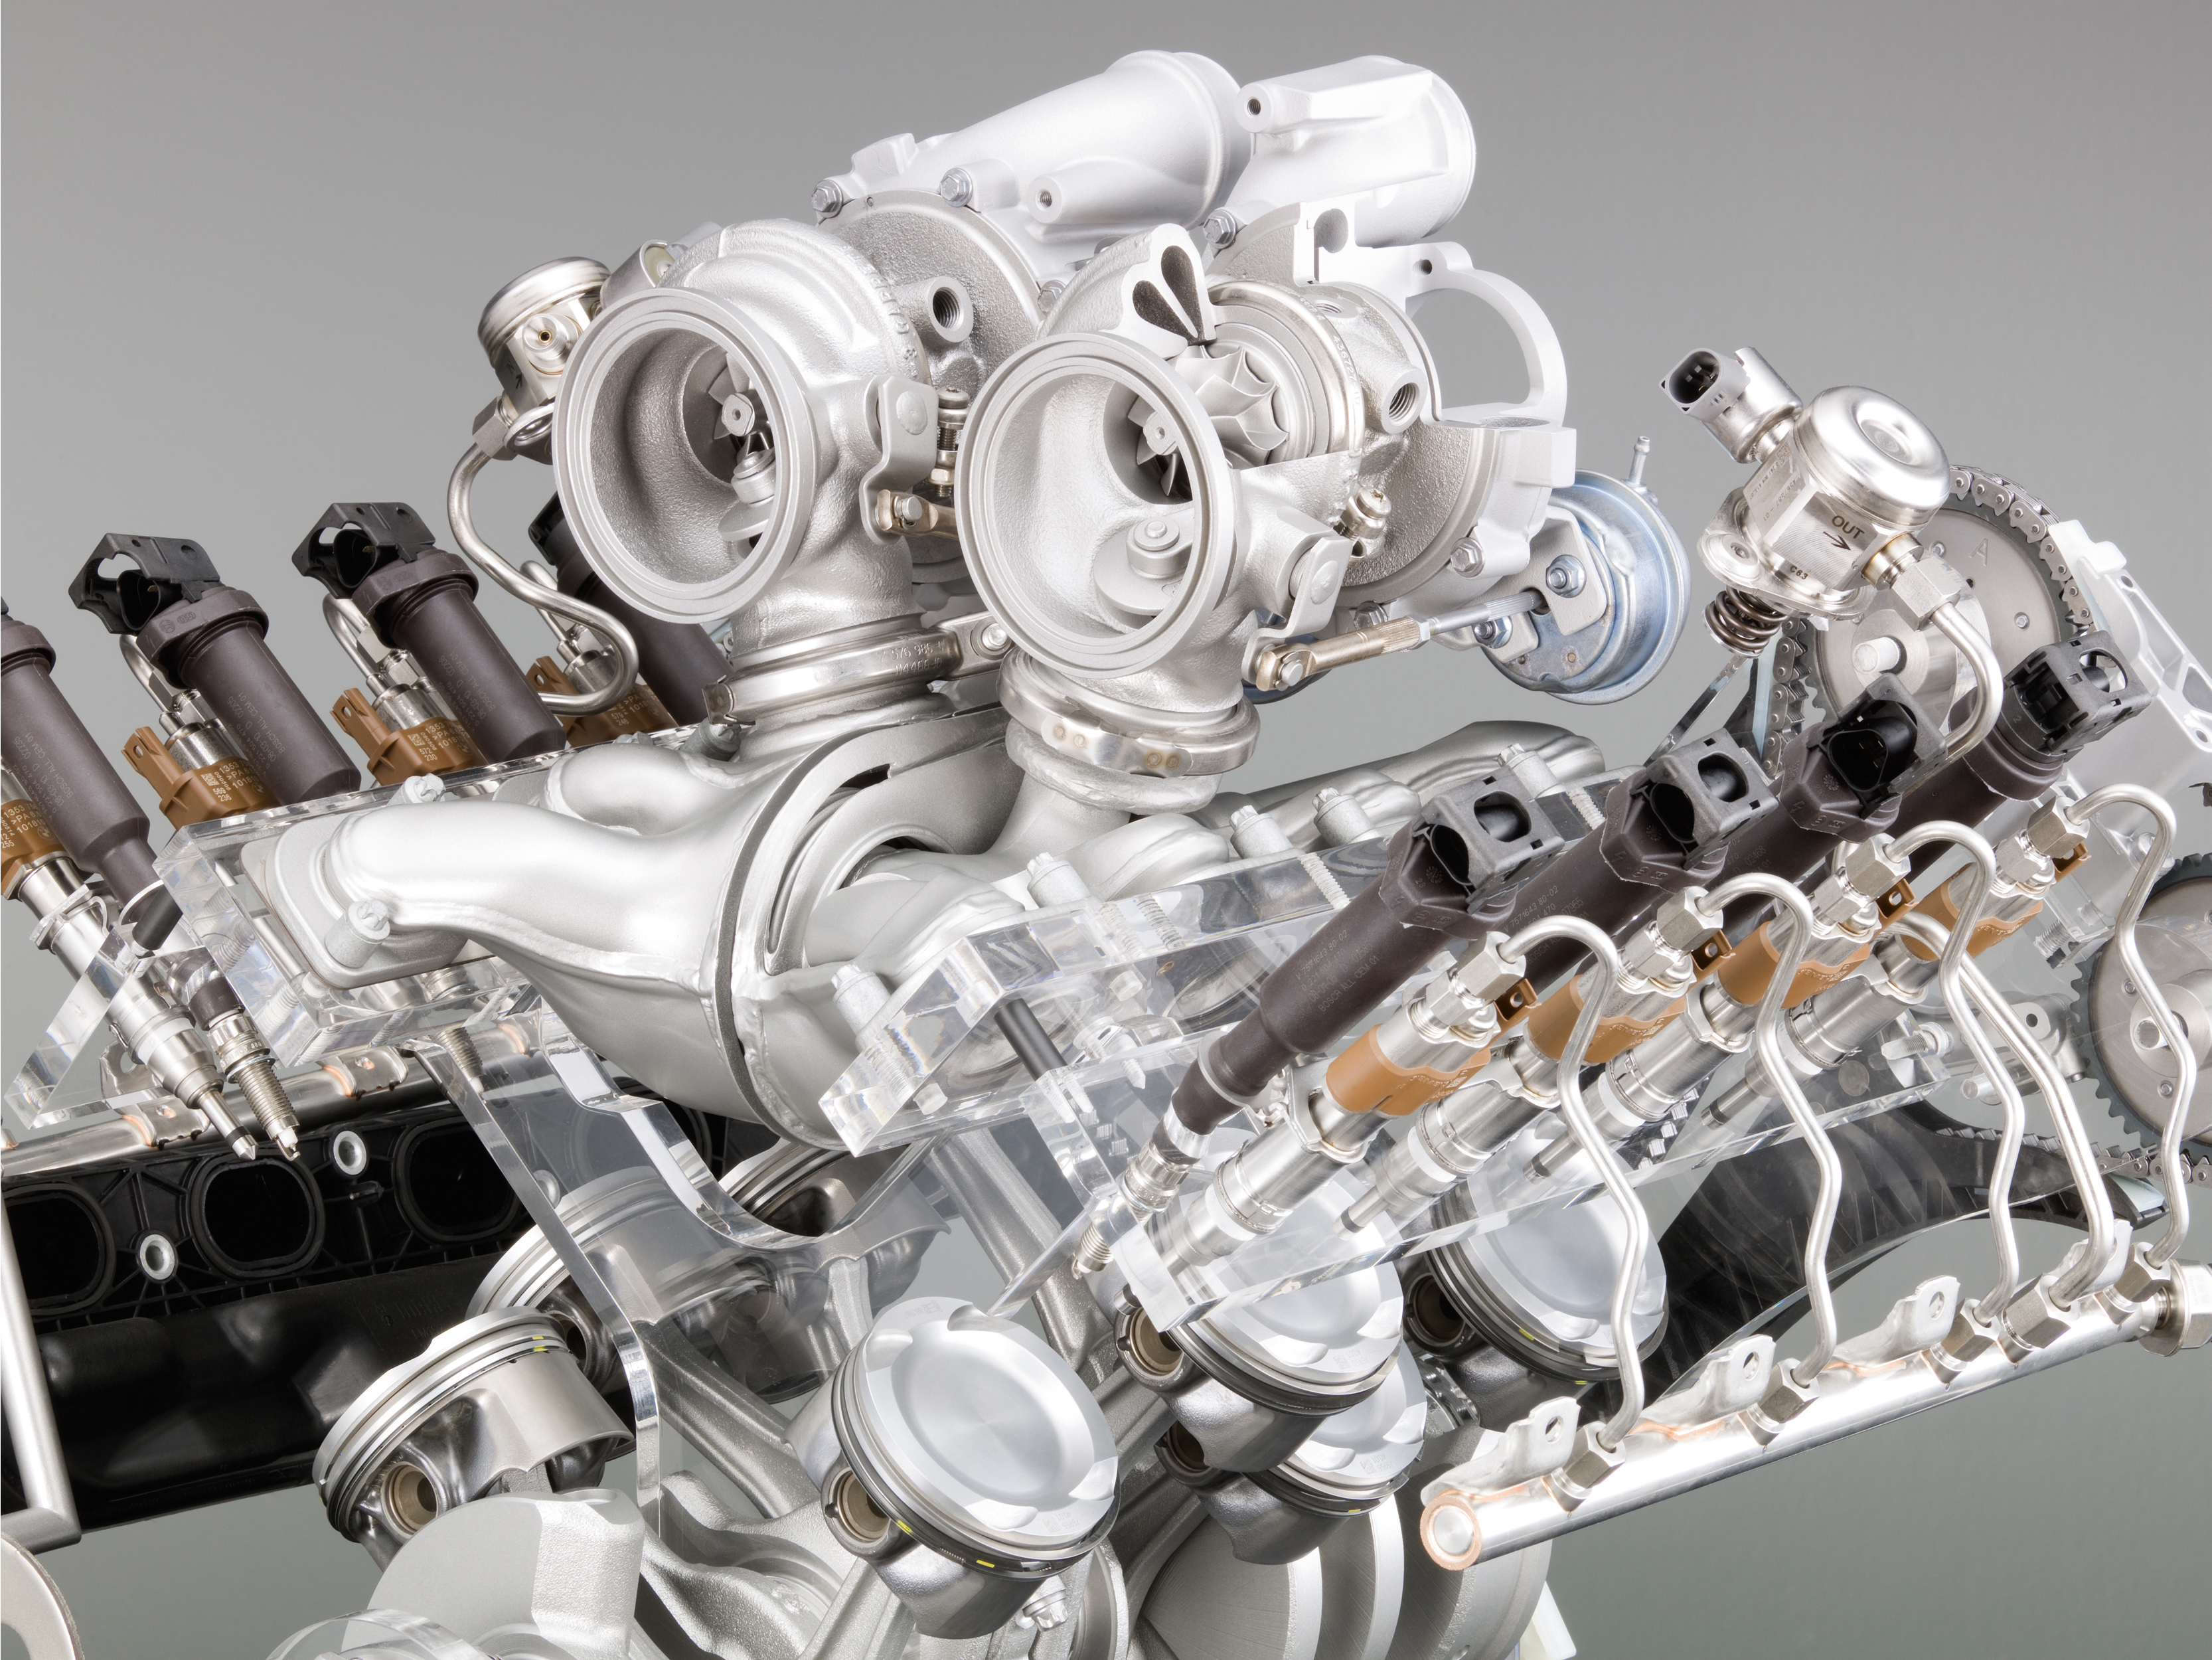 Engine Pictures BMW M5 F10 Concept!-p90045747.jpg